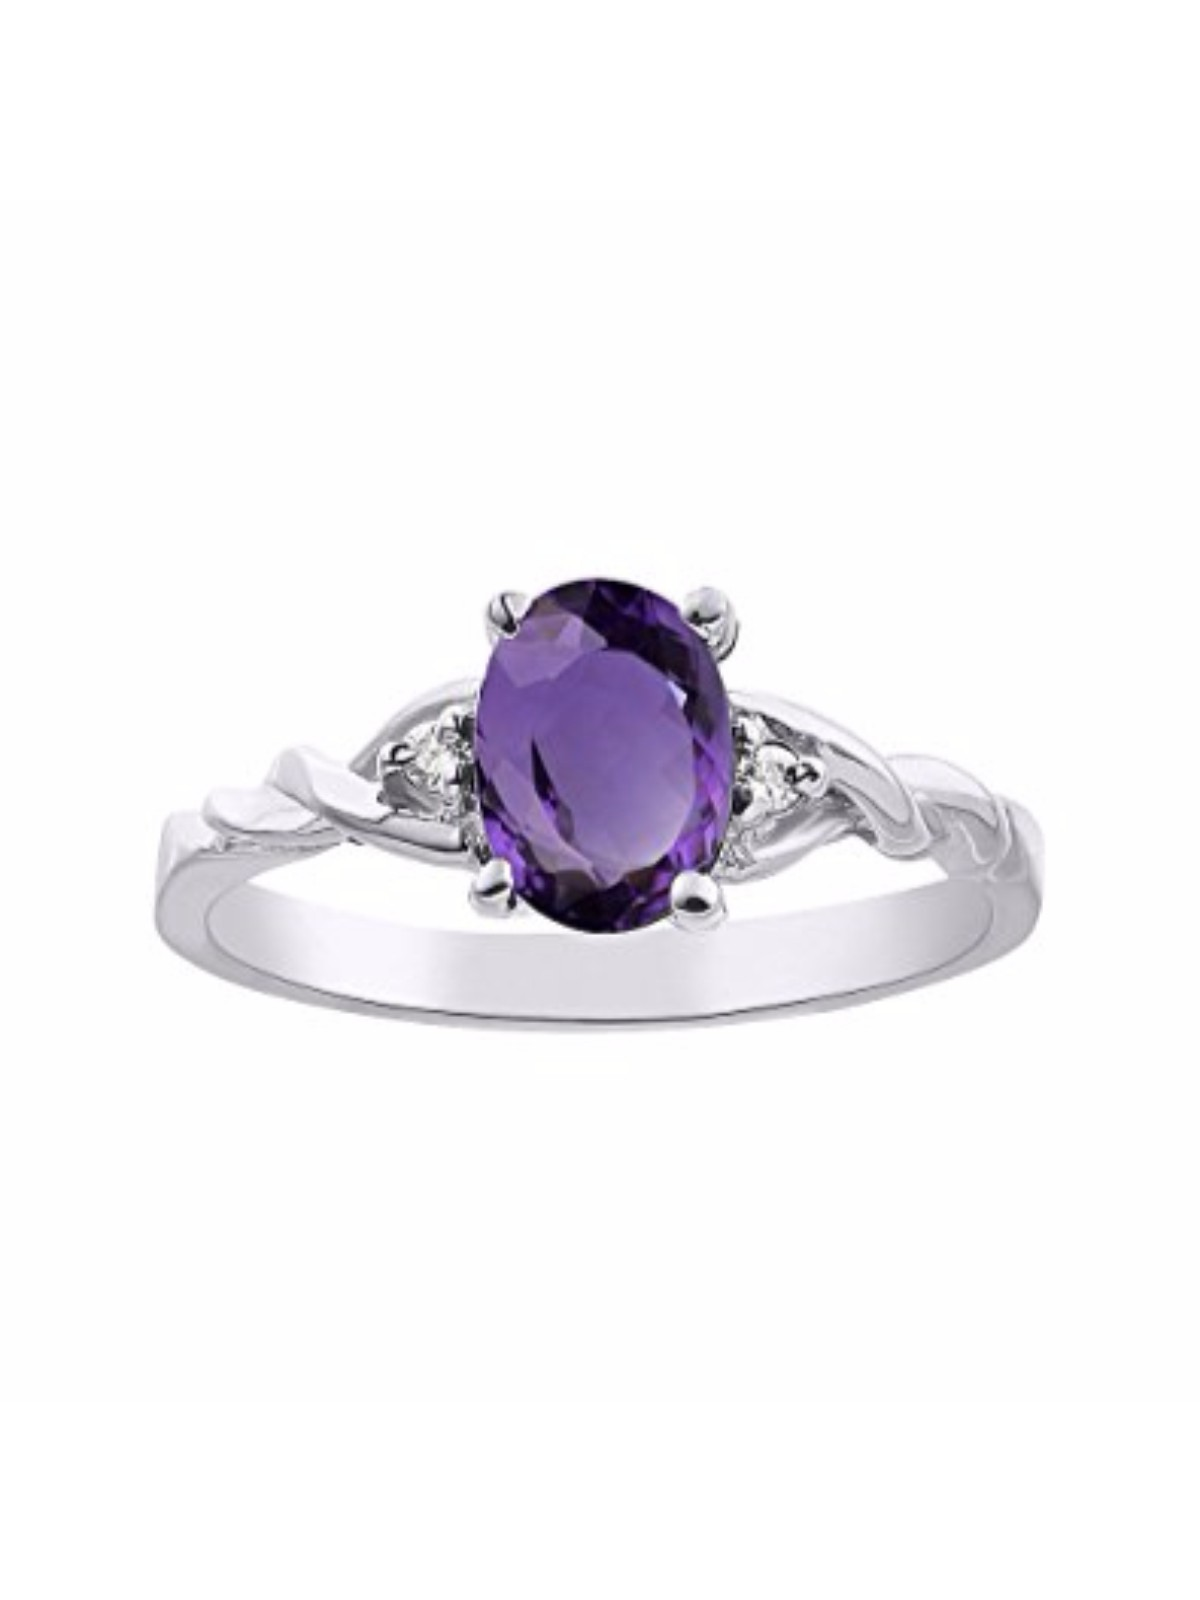 Details about  /14k White Gold Oval Amethyst And Diamond Ring